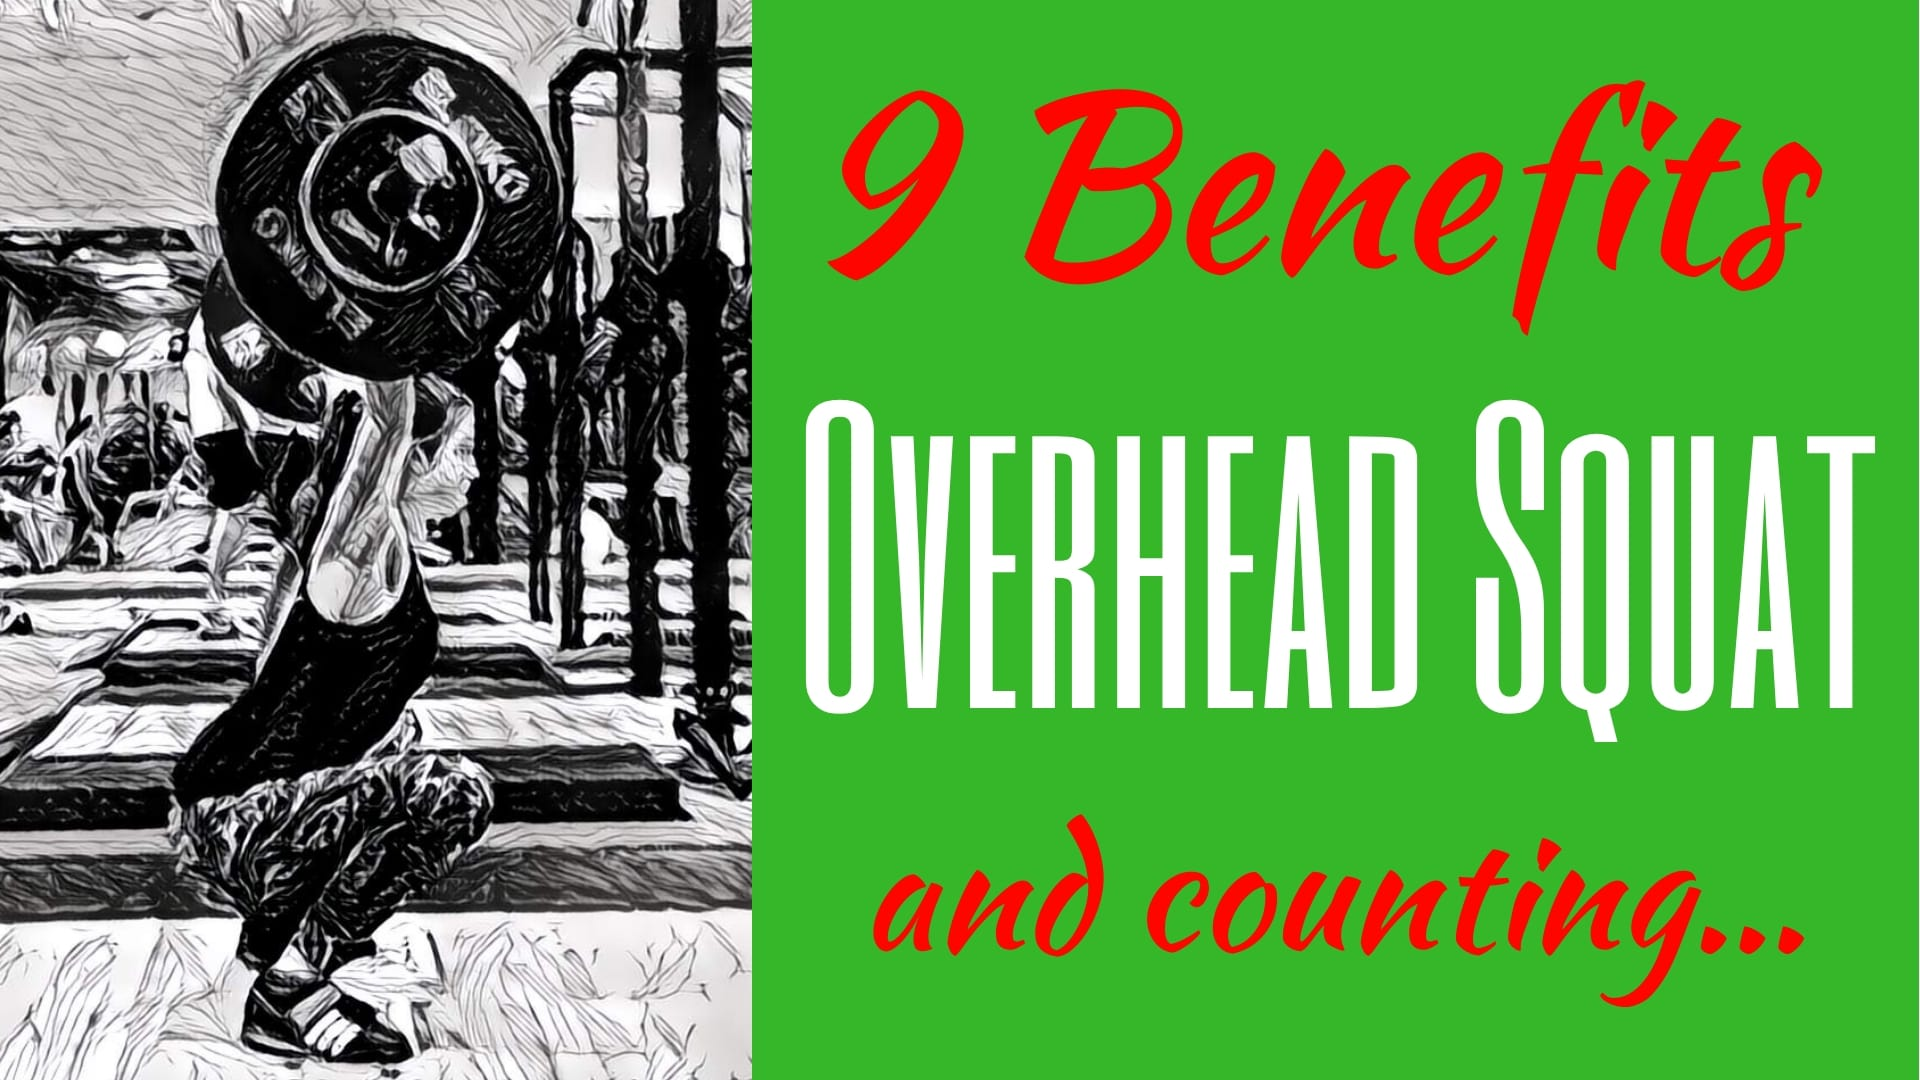 Overhead Squat benefits The benefits of Overhead Squats